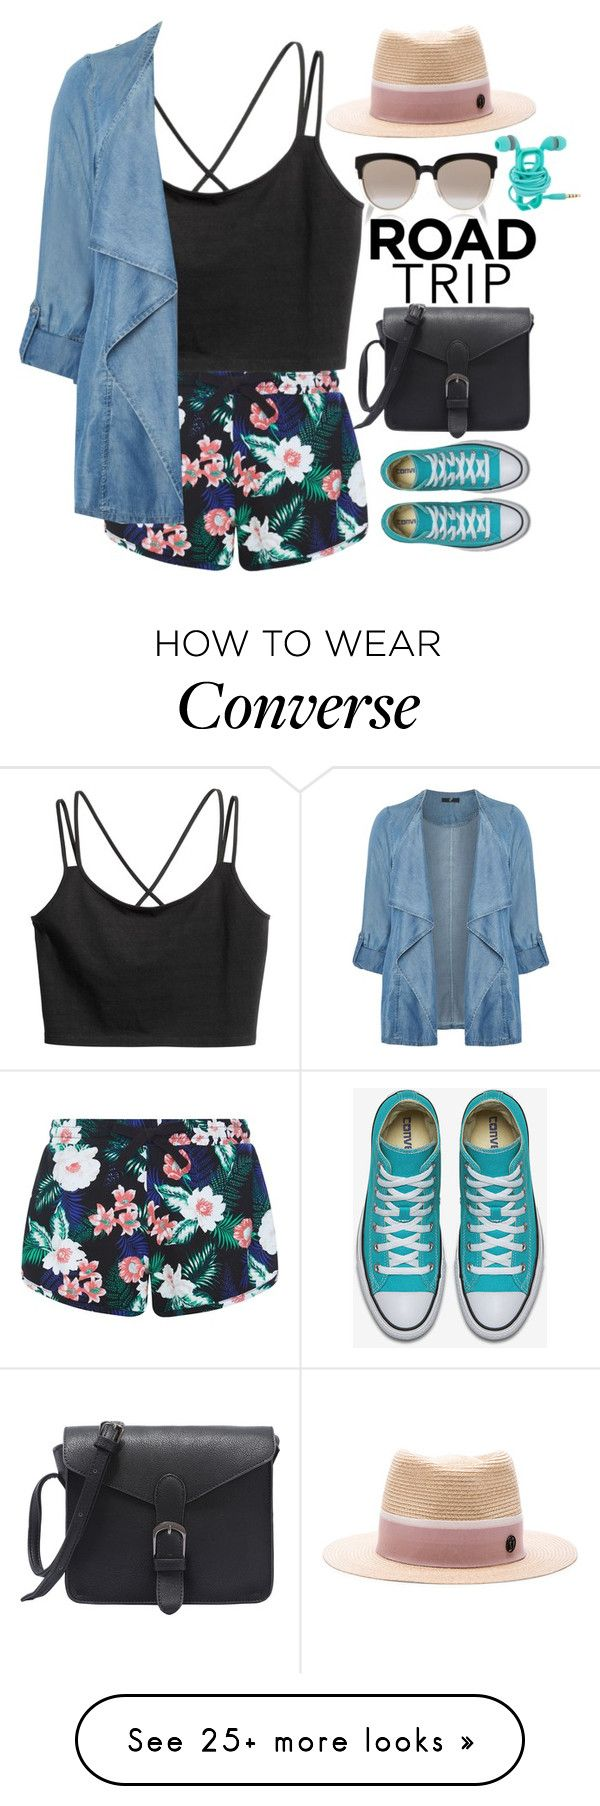 """Untitled #288"" by xo-panda-xo on Polyvore featuring New Look, Evans, Christian Dior, Maison Michel, roadtrip and plus size clothing"